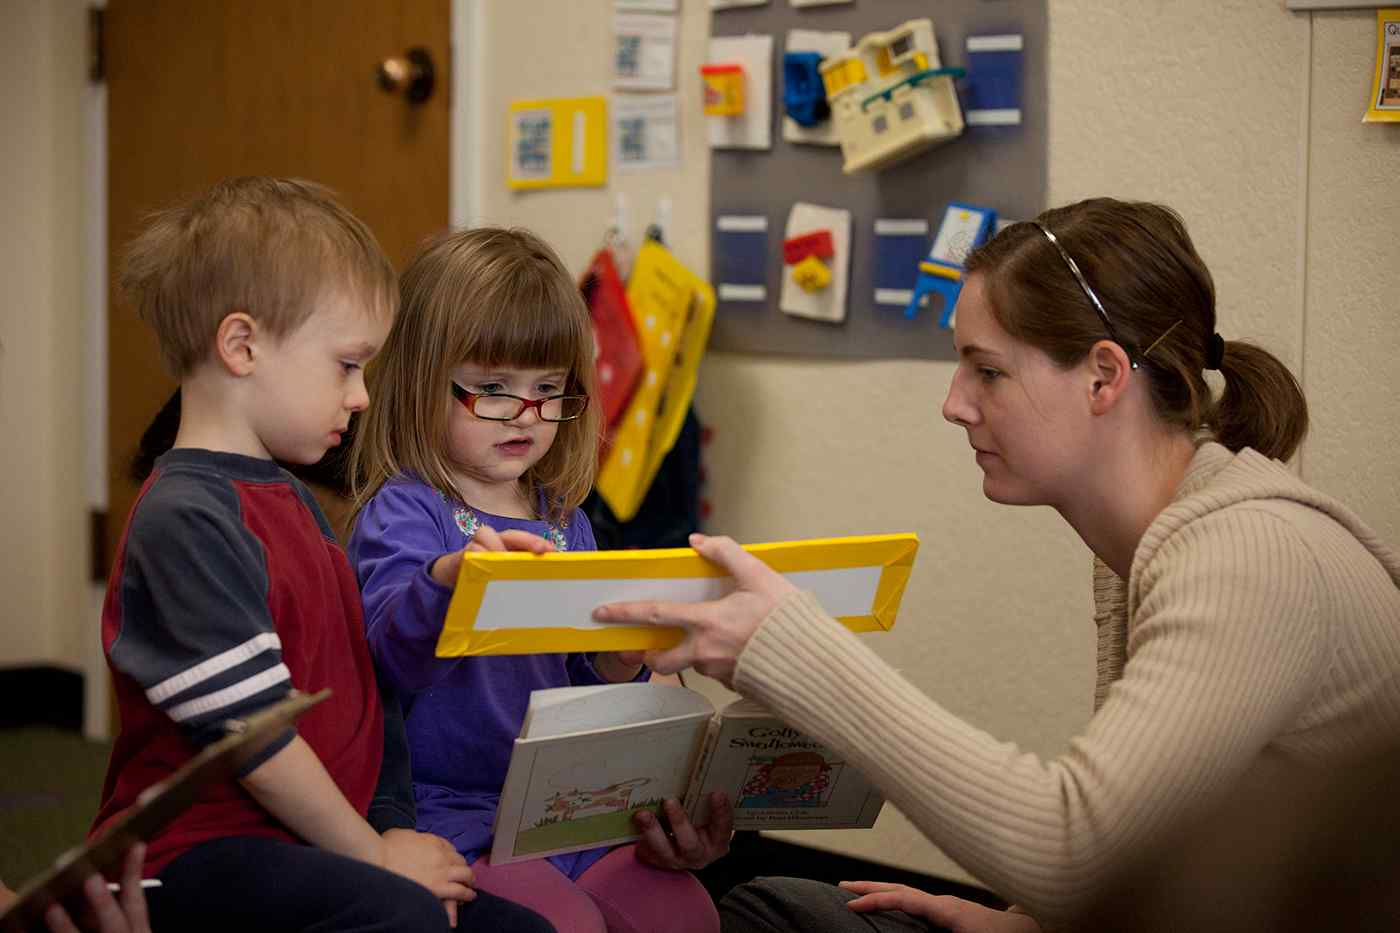 Speech-Language graduate students in the Communication Sciences and Disorders department work with kids at the clinic.